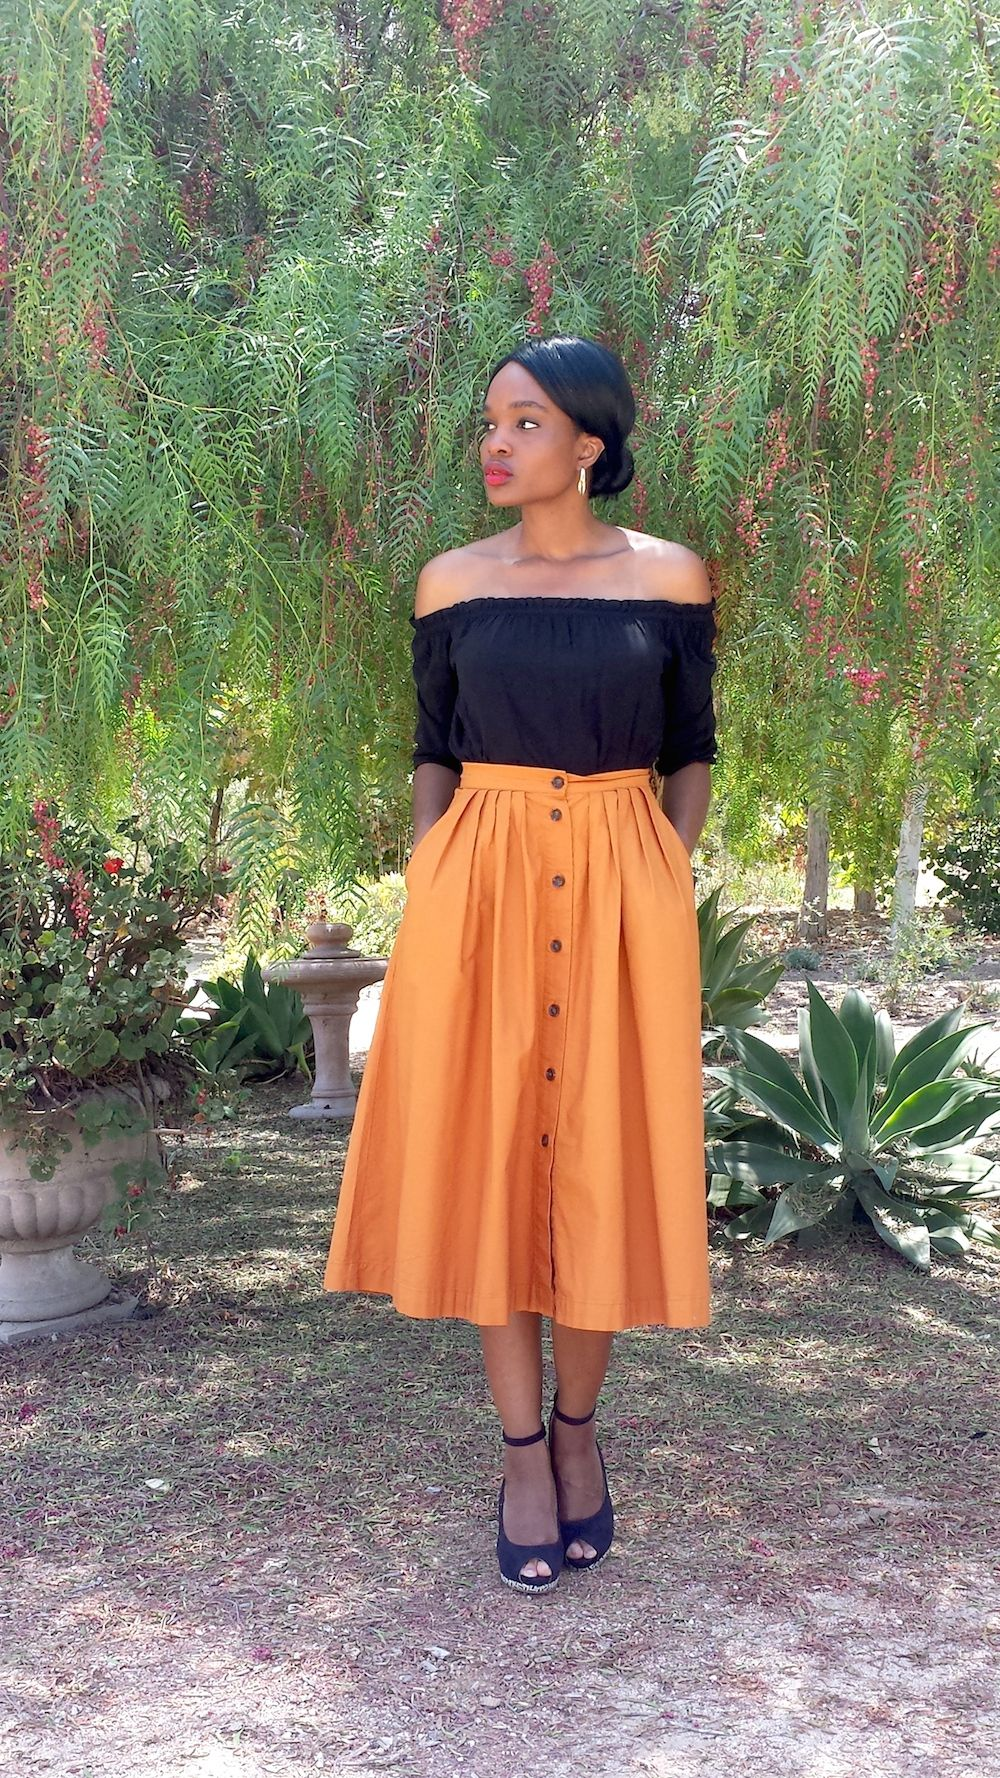 f77e9bd7d9 What I Wore: Talbots A-Line Pocket Skirt | What I Wore: Fall ...